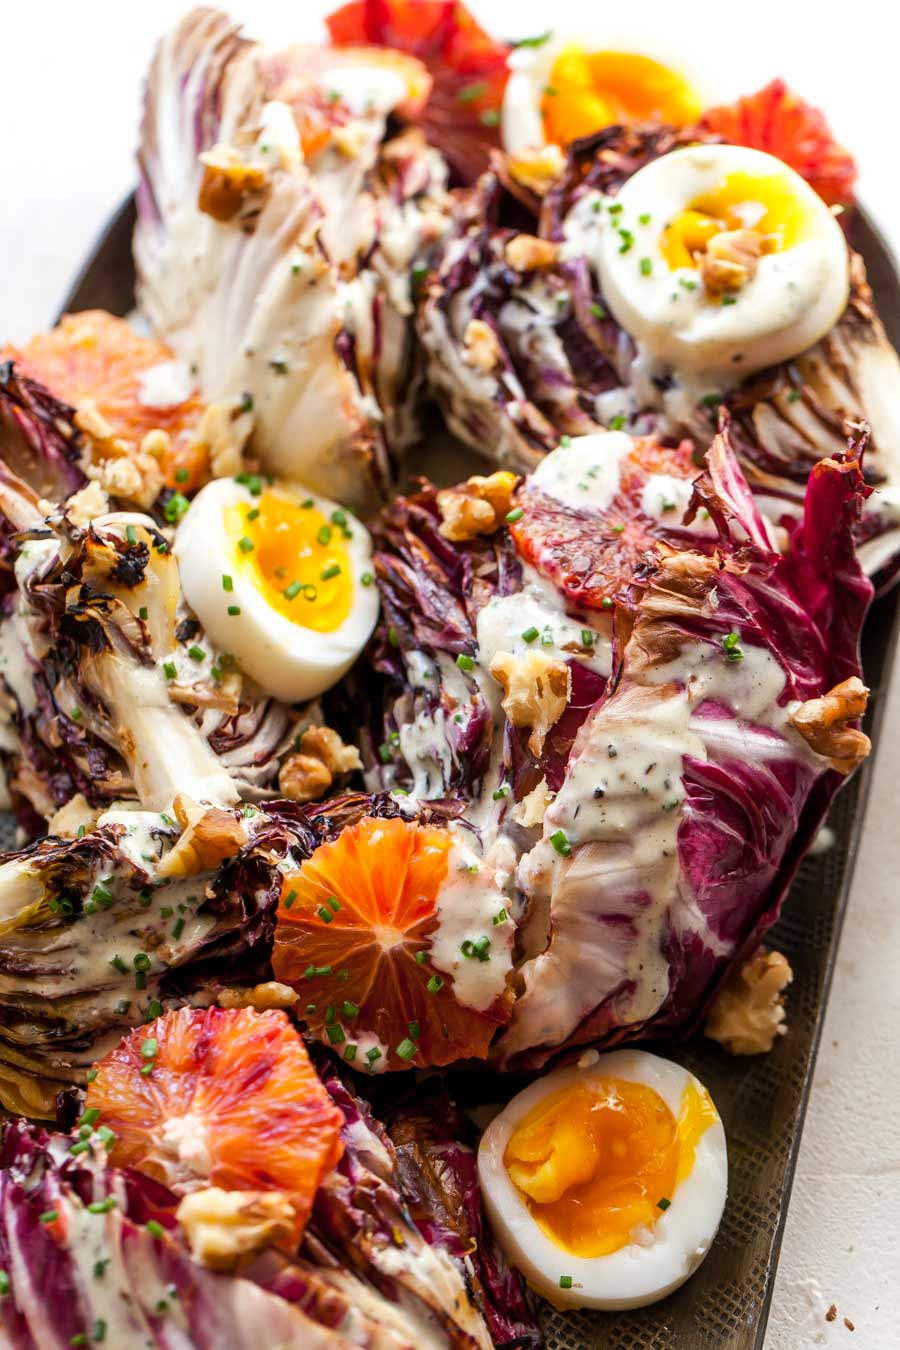 Grilled Salad with Jammy Eggs, Walnuts, and Creamy Walnut Dressing